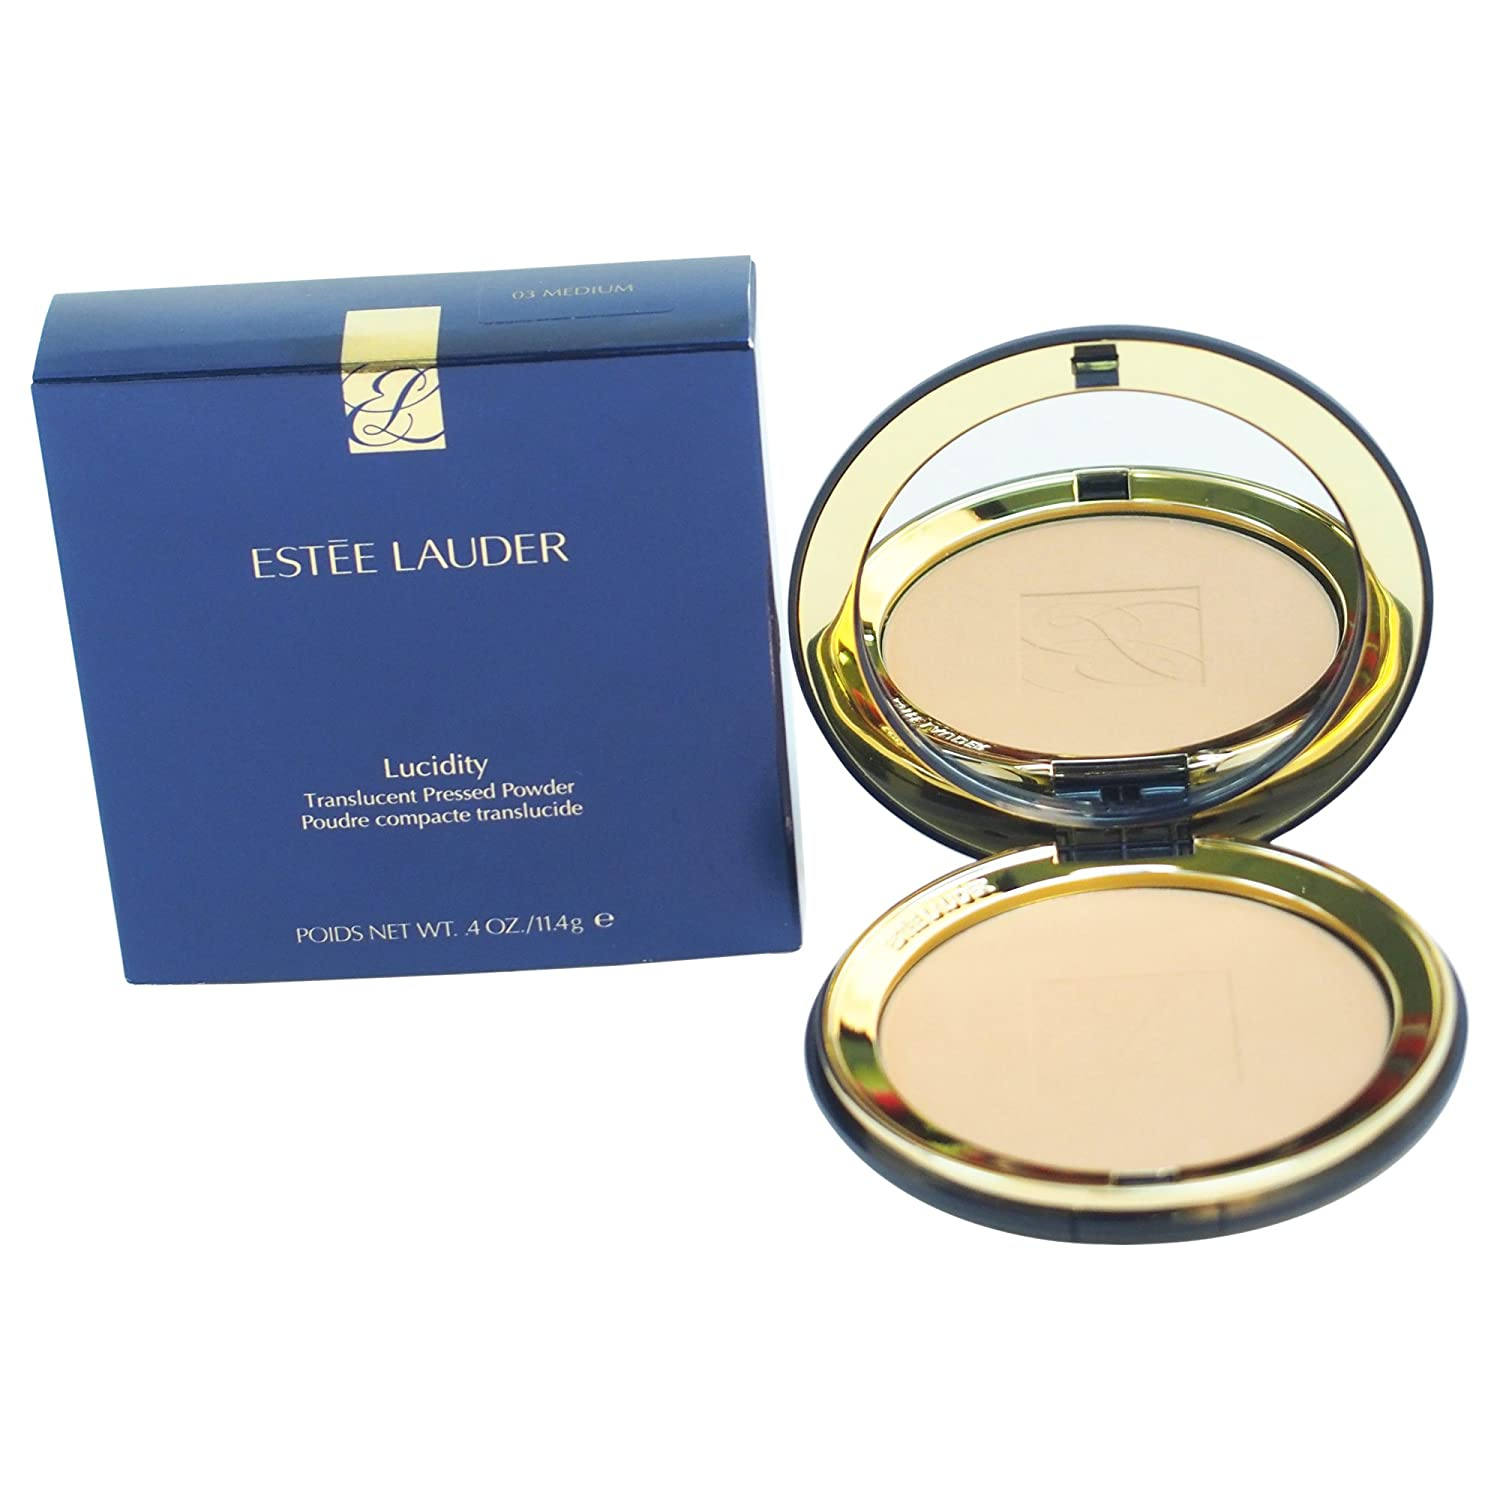 Estee Lauder Lucidity Translucent Pressed Powder for Normal Combination and Dry Skin, No. 03 Medium, 0.4 Ounce, W-C-4829 027131083153